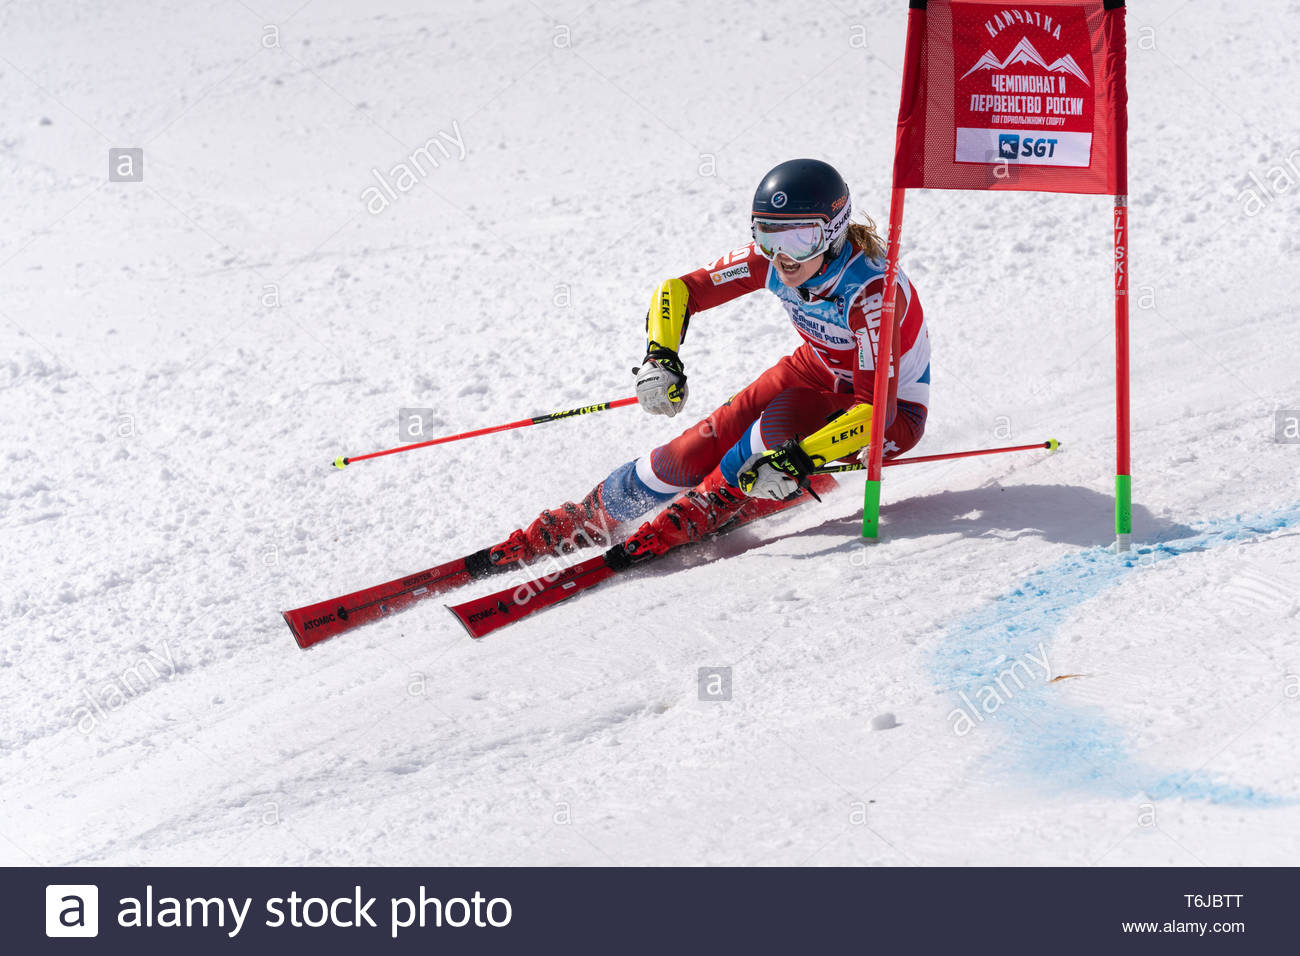 KAMCHATKA PENINSULA, RUSSIAN FEDERATION - APRIL 1, 2019: Russian Women's Alpine Skiing Championship, giant slalom. Mountain skier Ekaterina Tkachenko  - Stock Image